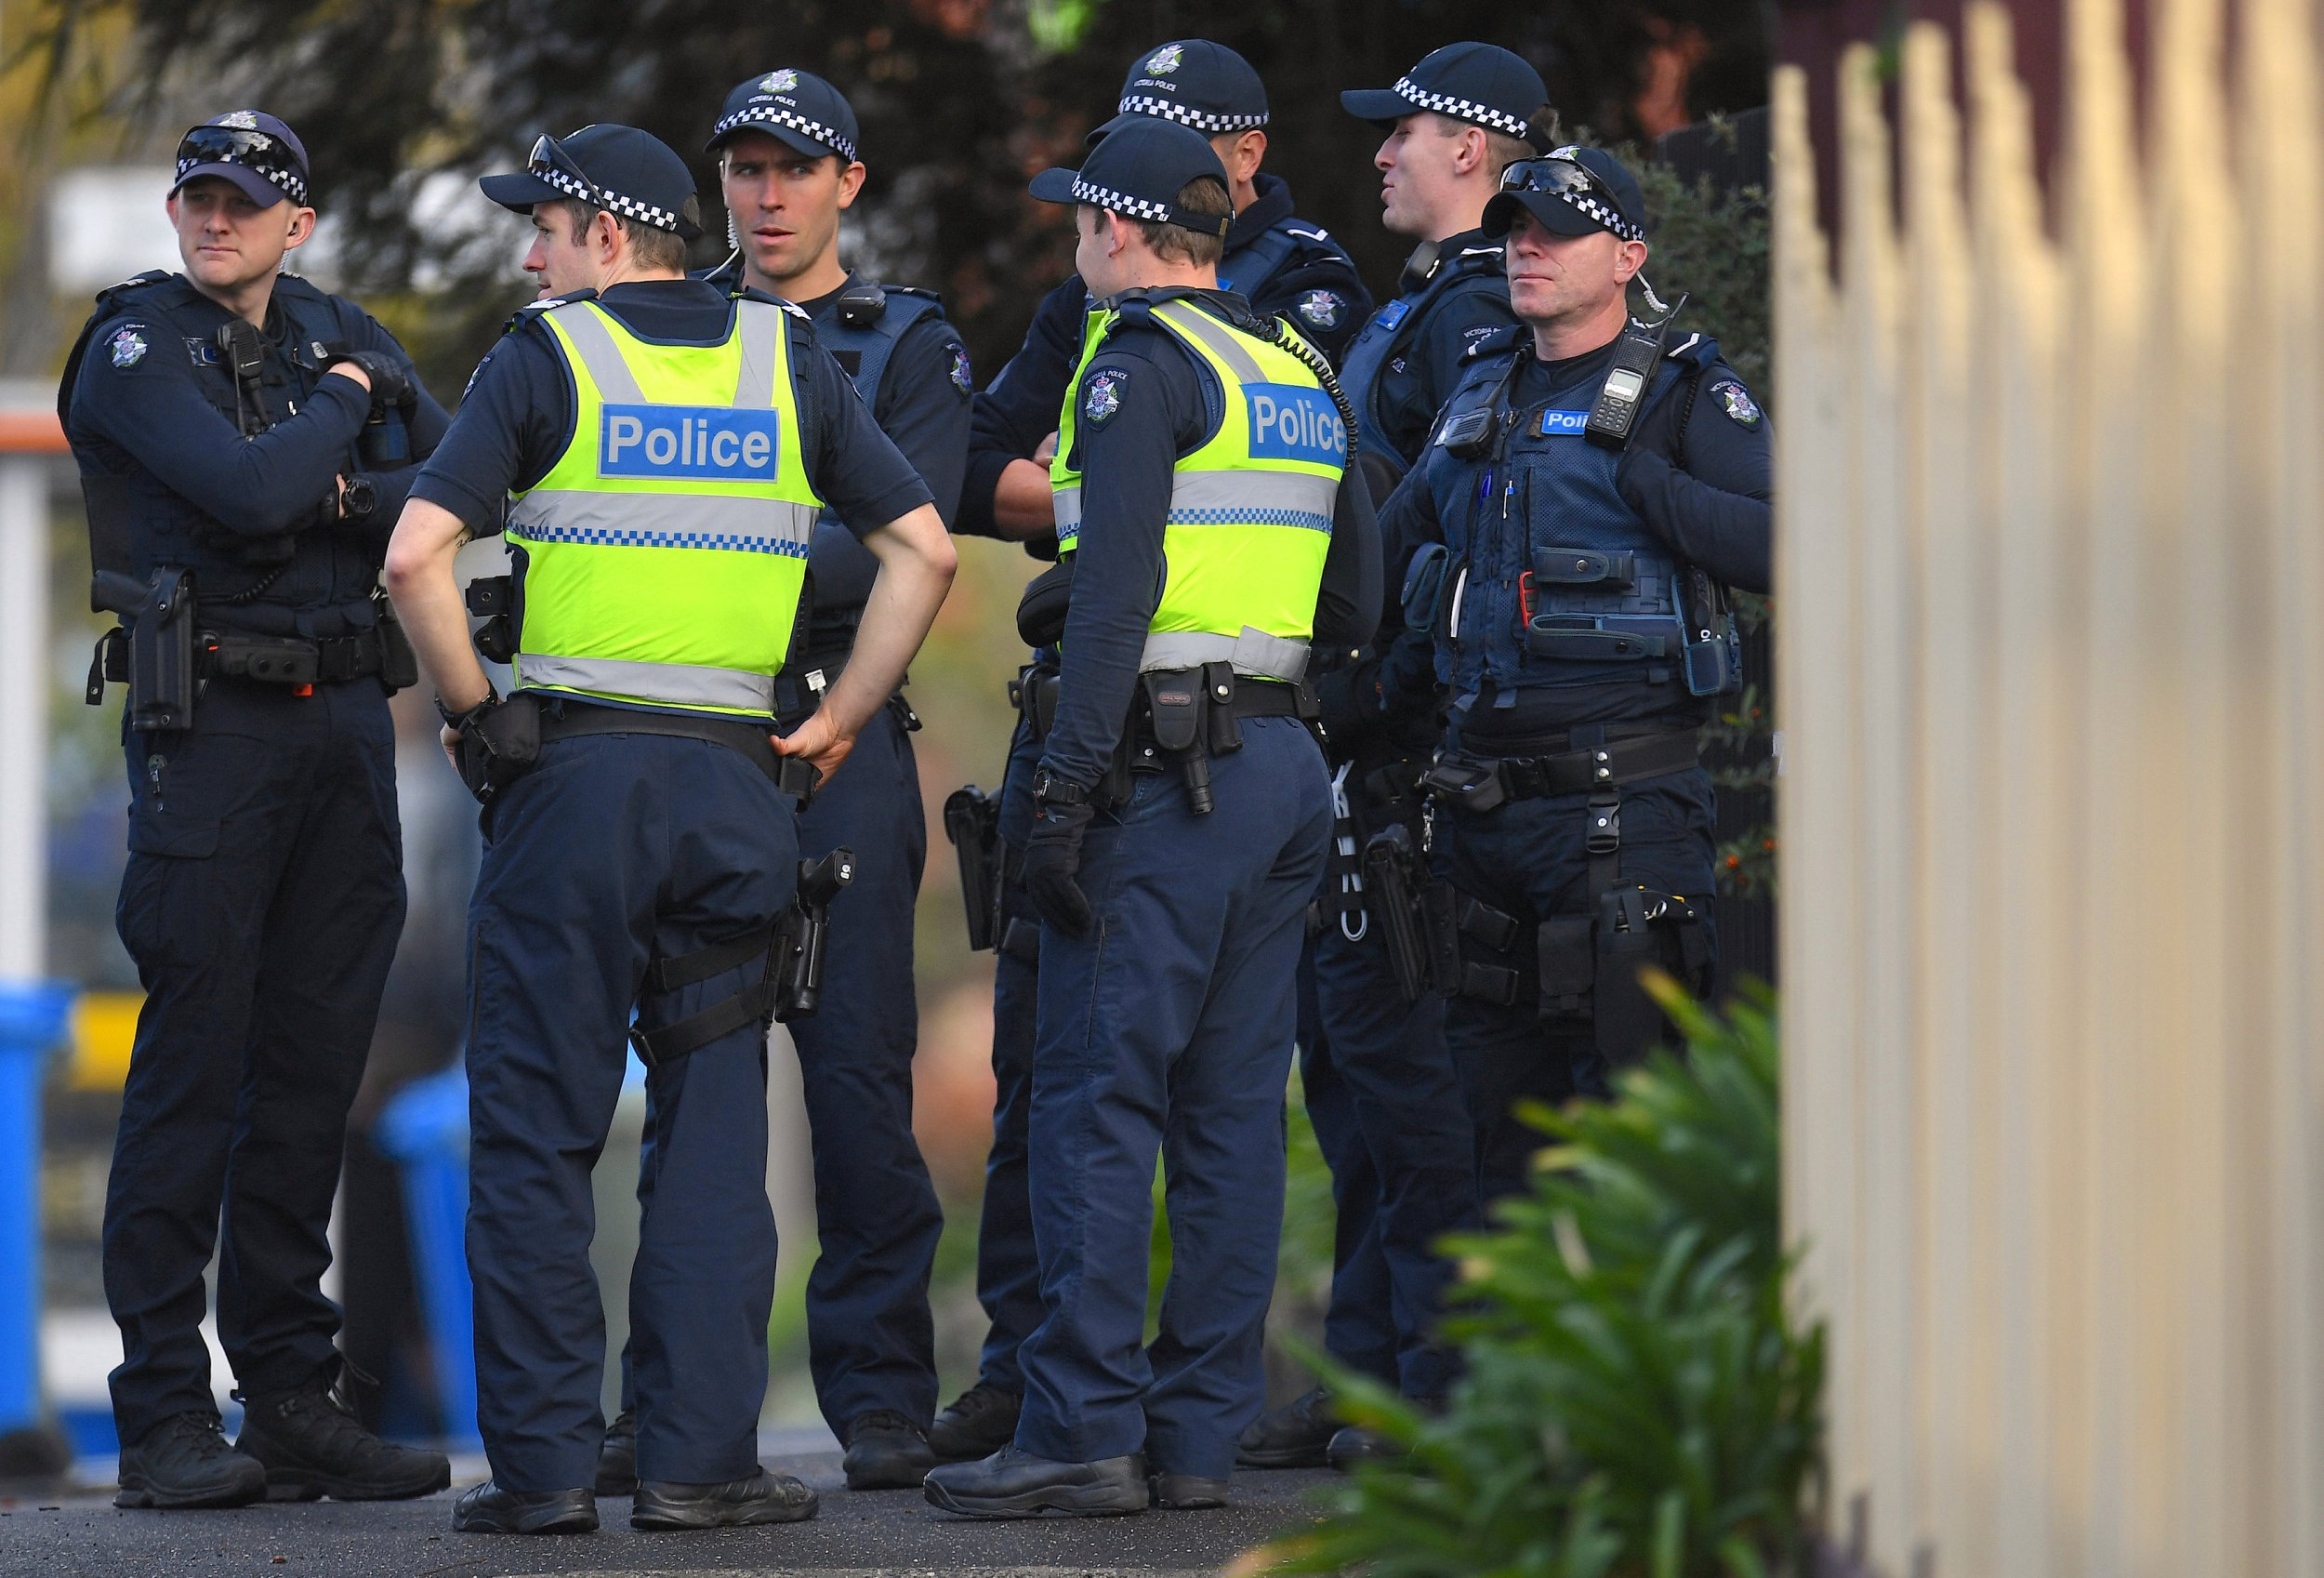 Australia Police To Get Greater Powers To Use Lethal Force